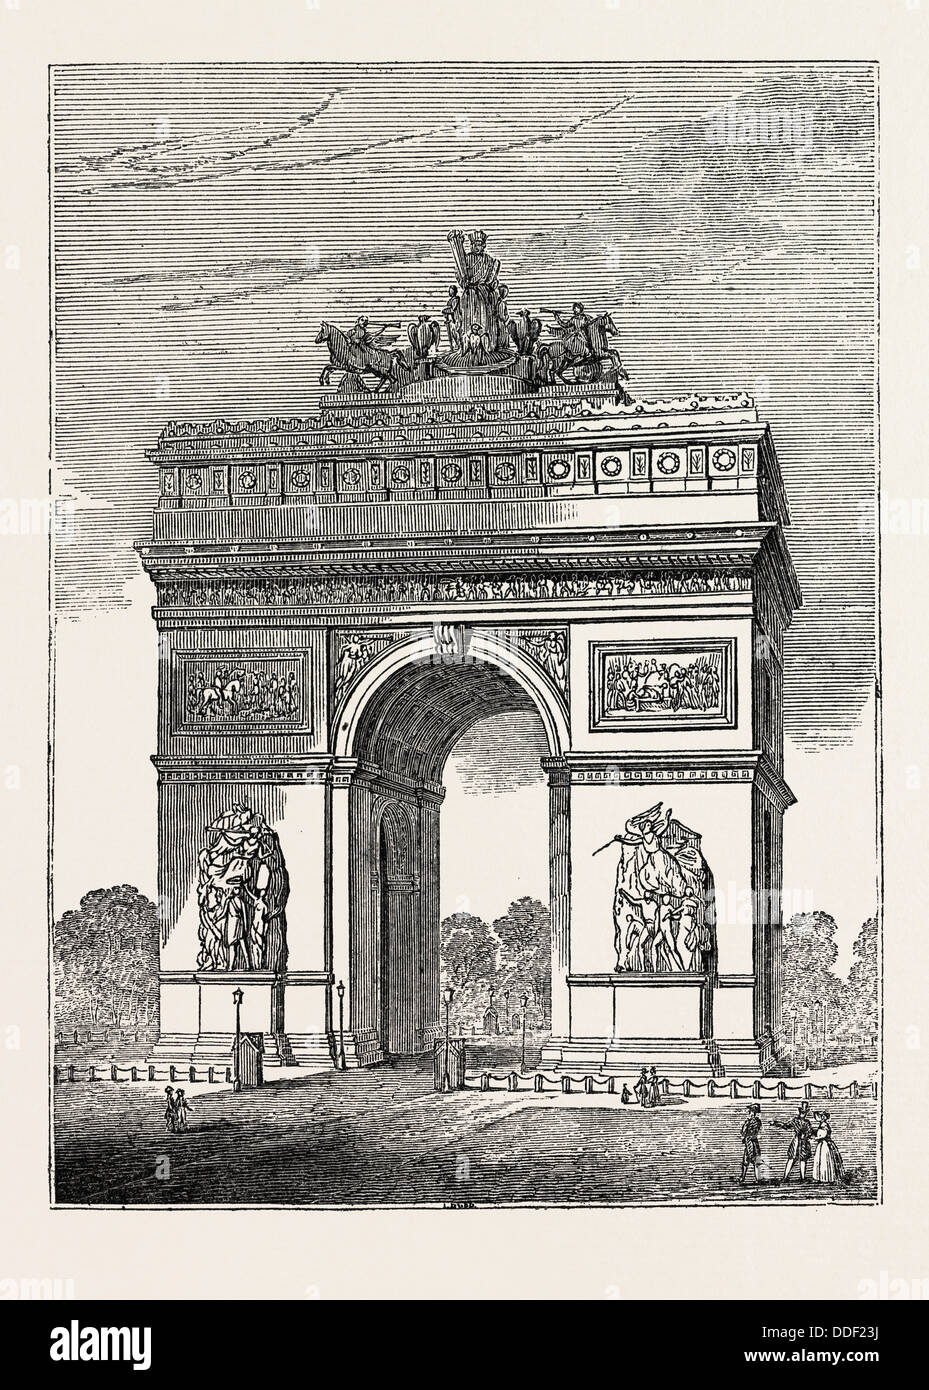 NEW TRIUMPHAL ARCH AT PARIS, FRANCE, 1836 - Stock Image